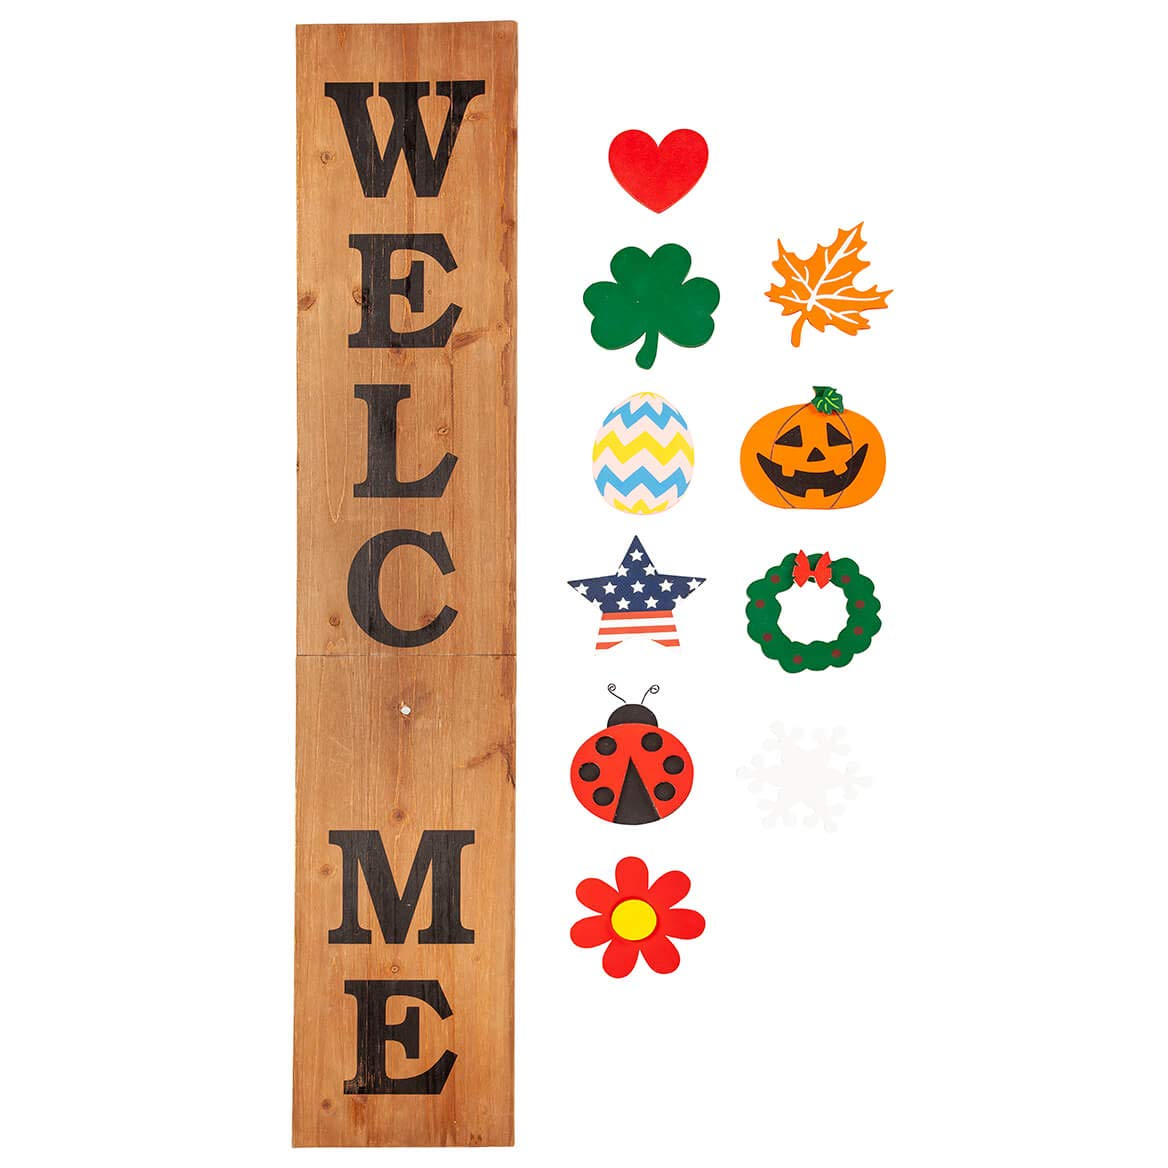 Fox Valley Traders Folding Wooden Welcome Sign, Including 10 Interchangeable Holiday Shapes with Magnets